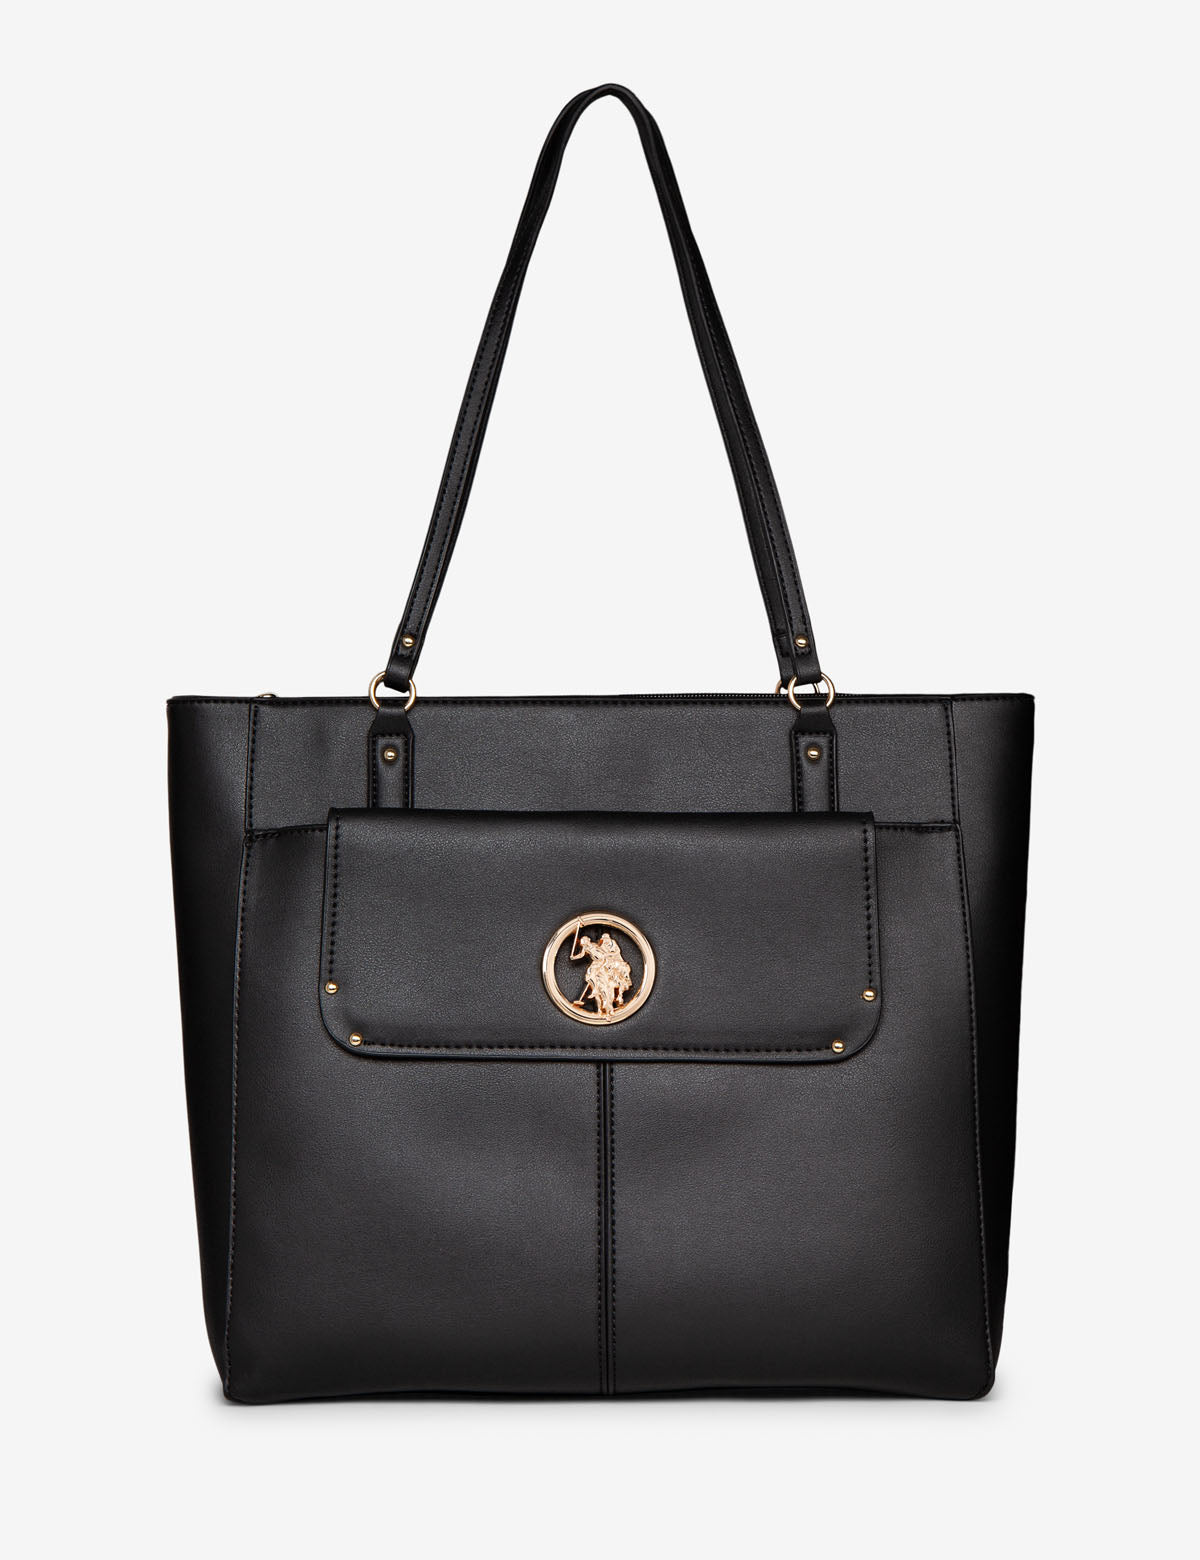 TOTE WITH LOGO MEDALLION - U.S. Polo Assn.